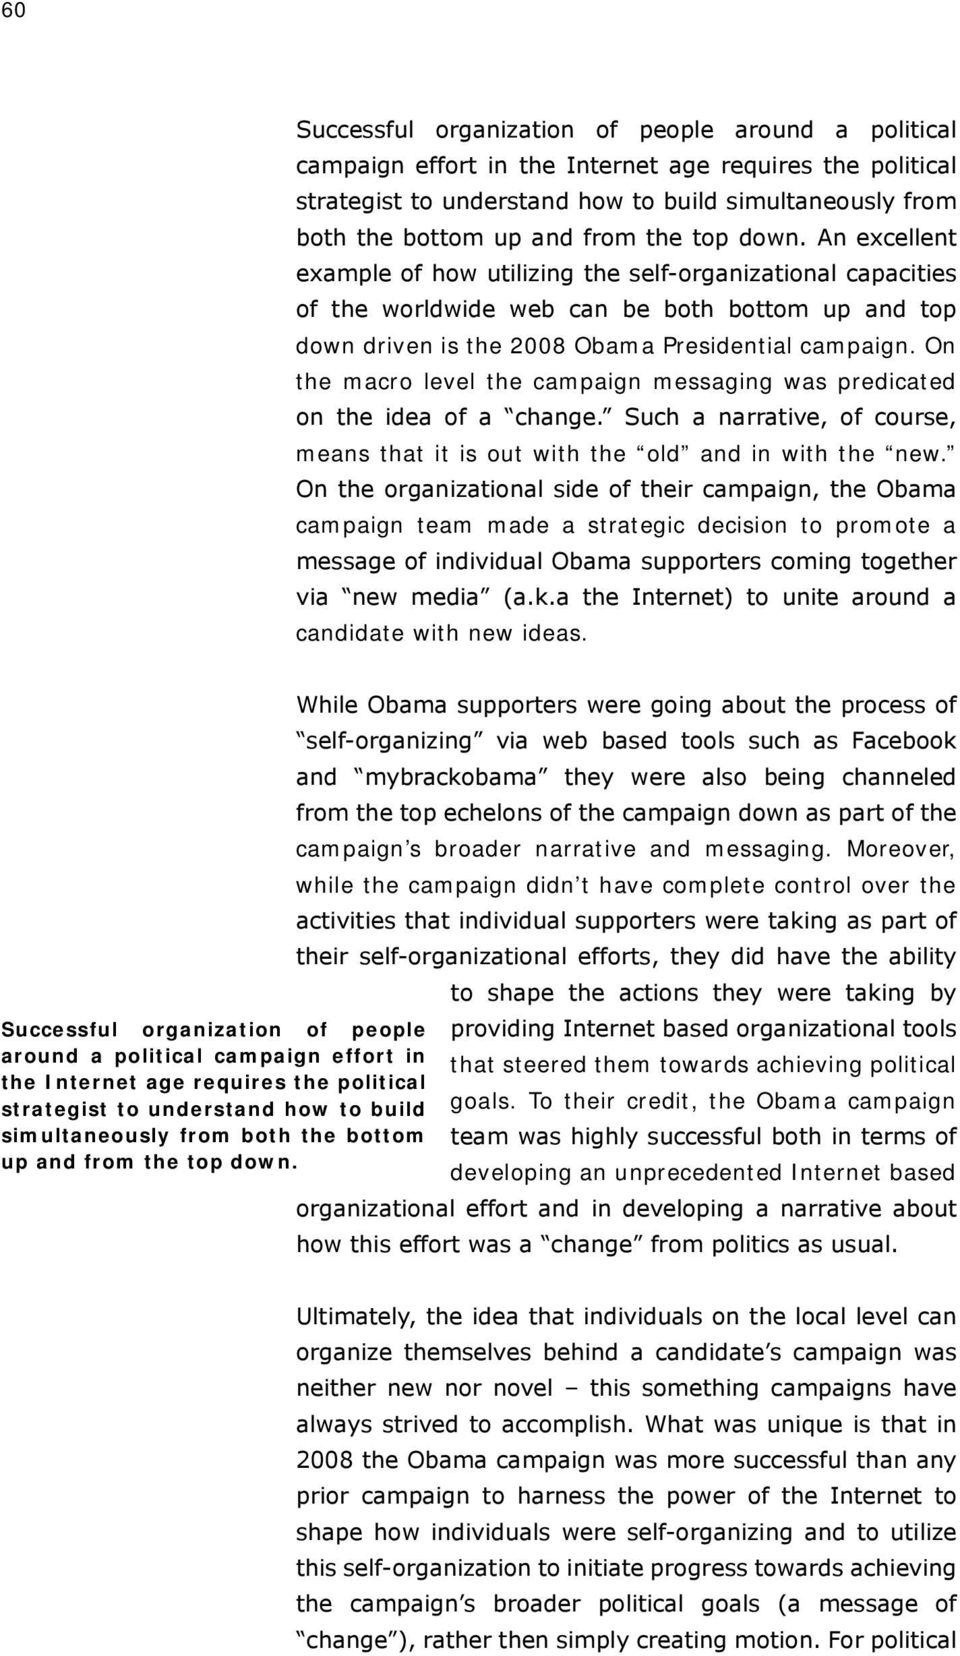 On the macro level the campaign messaging was predicated on the idea of a change. Such a narrative, of course, means that it is out with the old and in with the new.